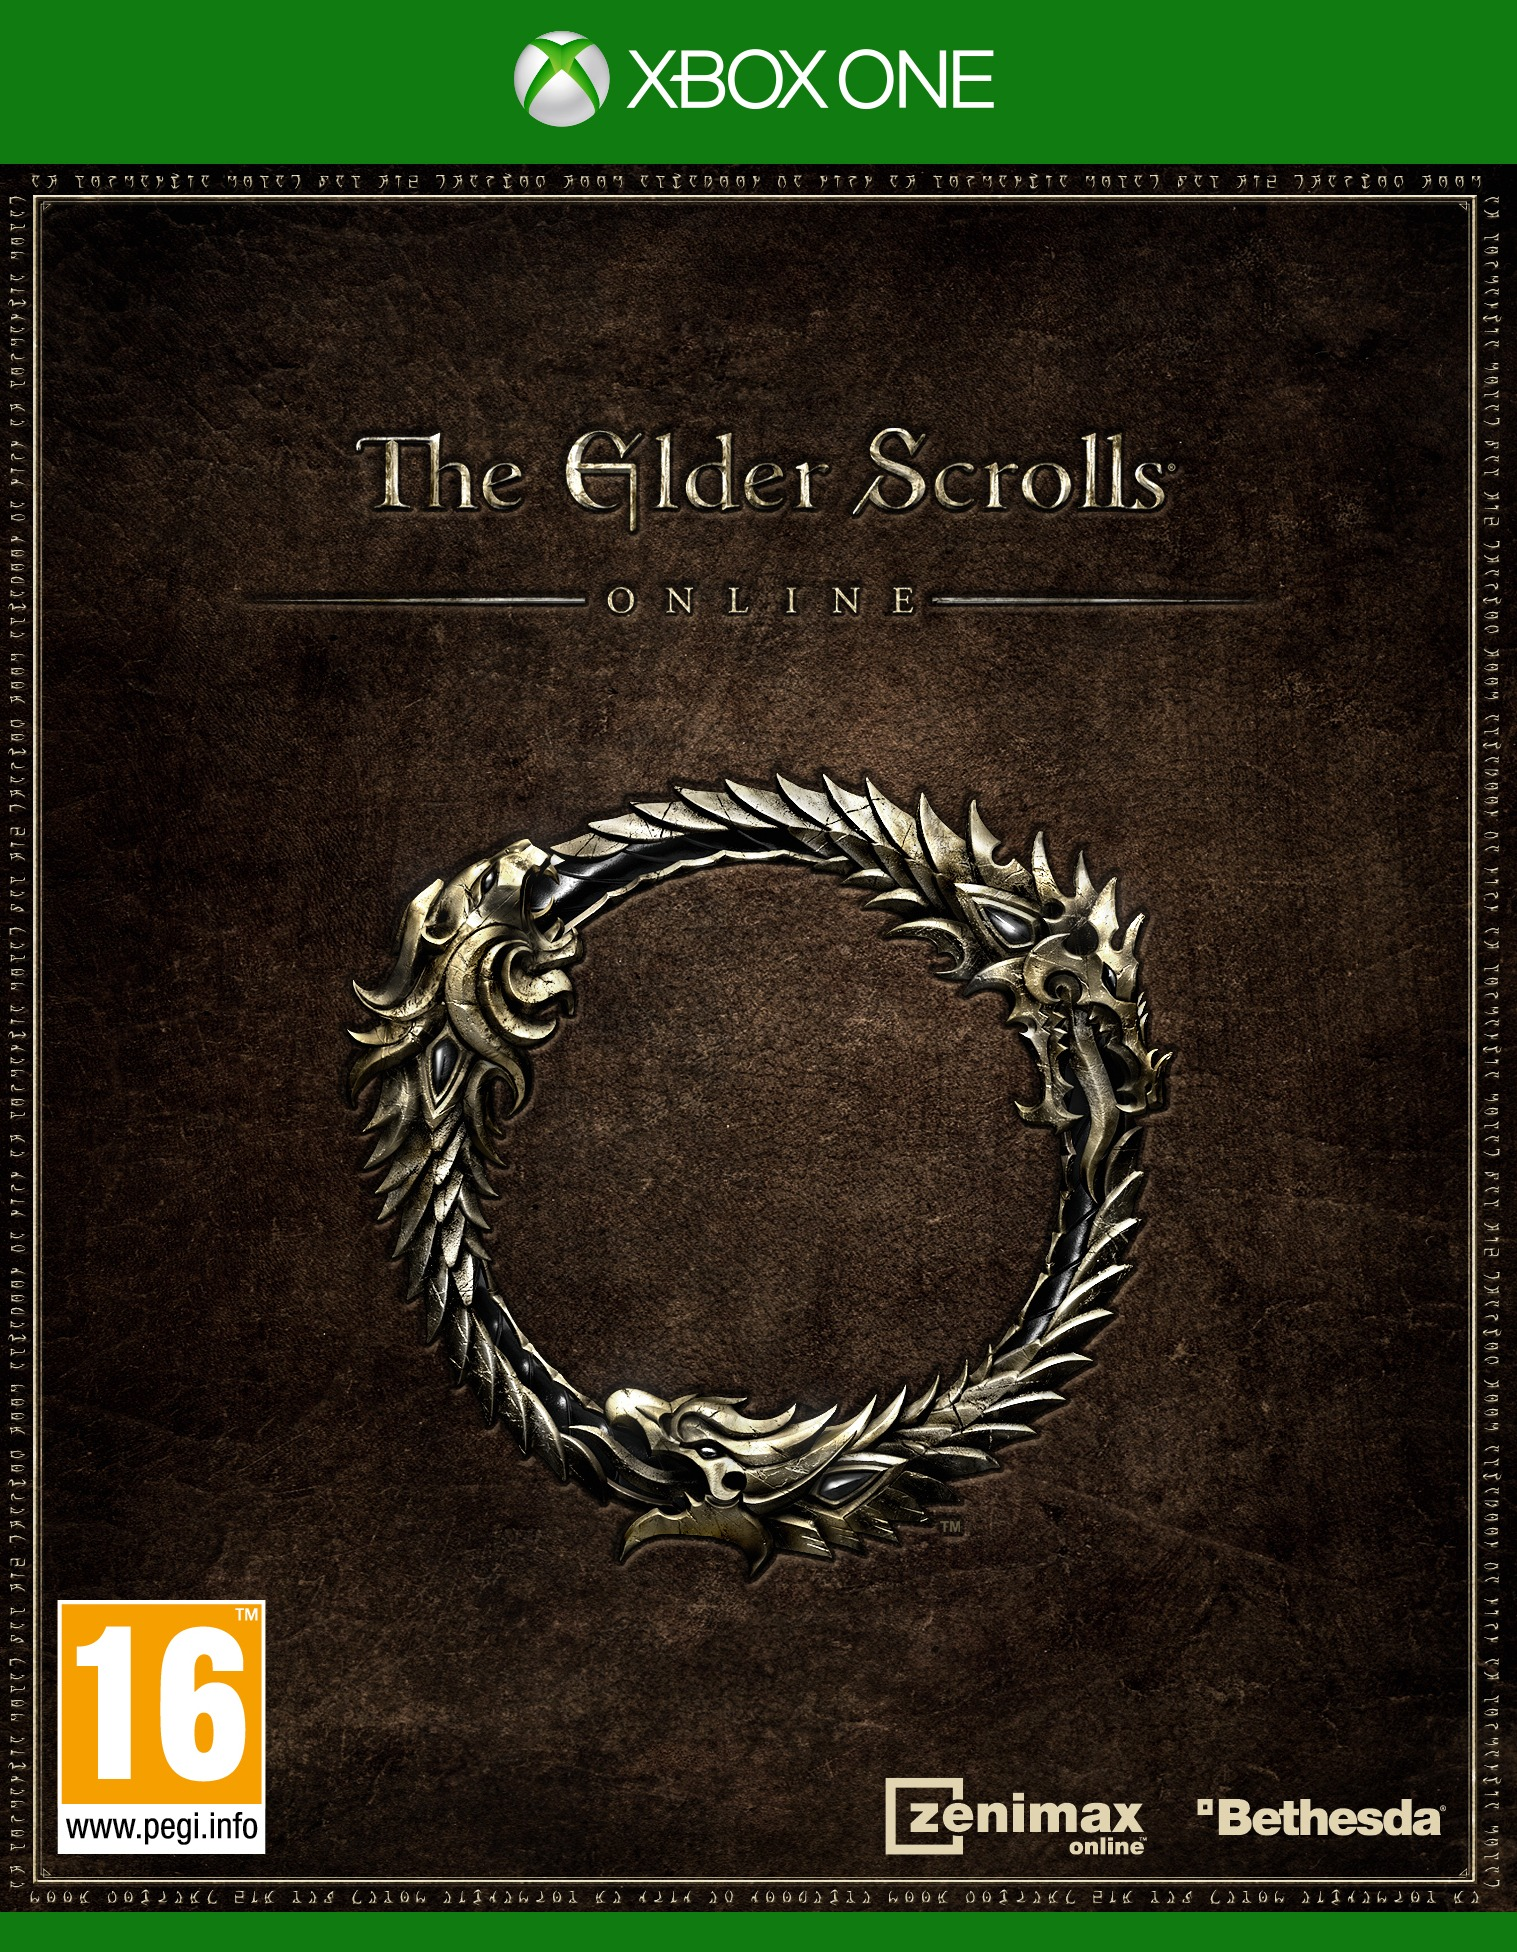 The Elder Scrolls Online - Xbox One box art